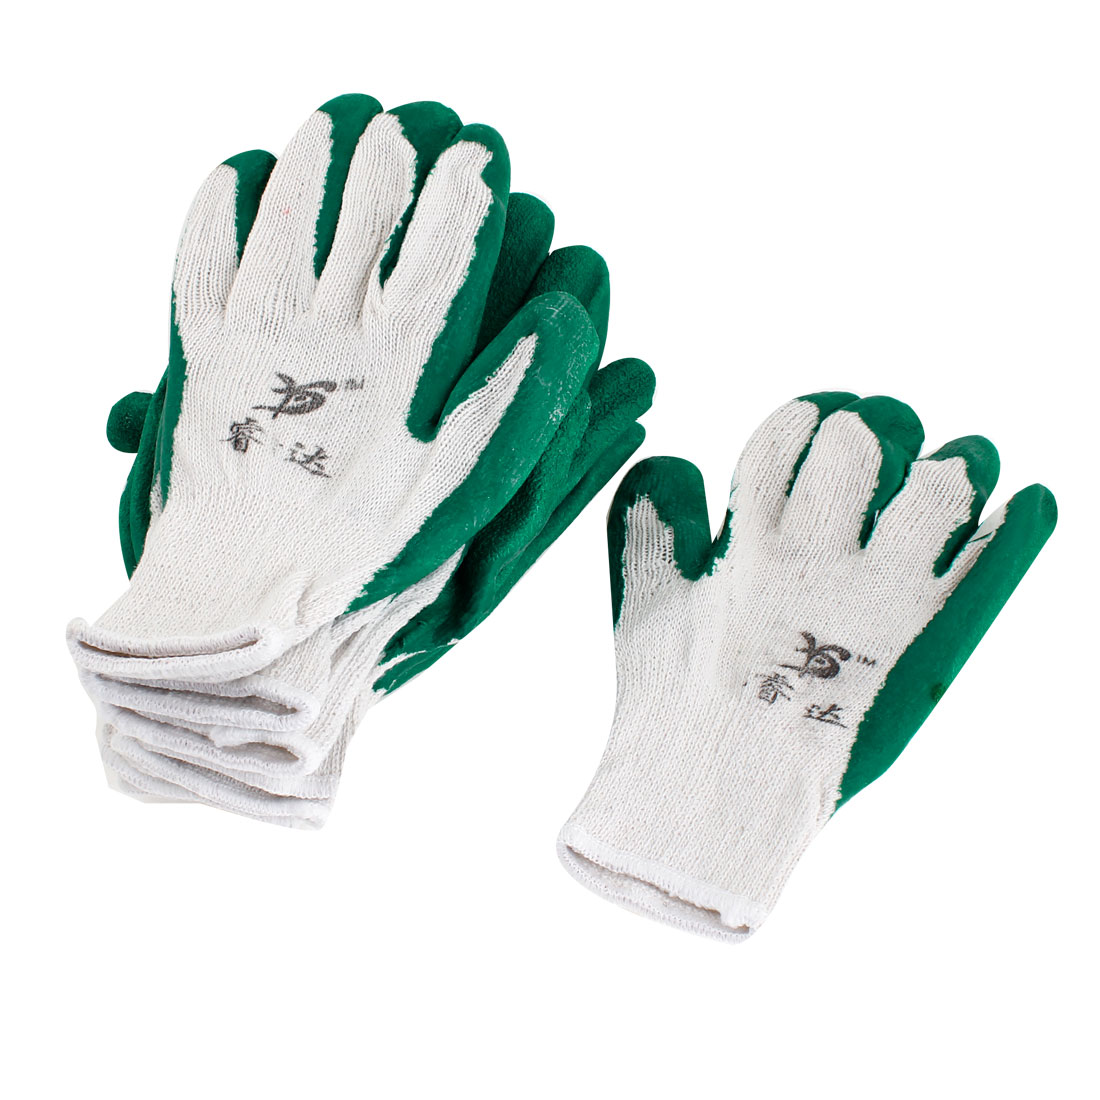 Elastic Cuff Latex Rubber Wrapped Plam Work Labor Gloves Green White 10 Pcs